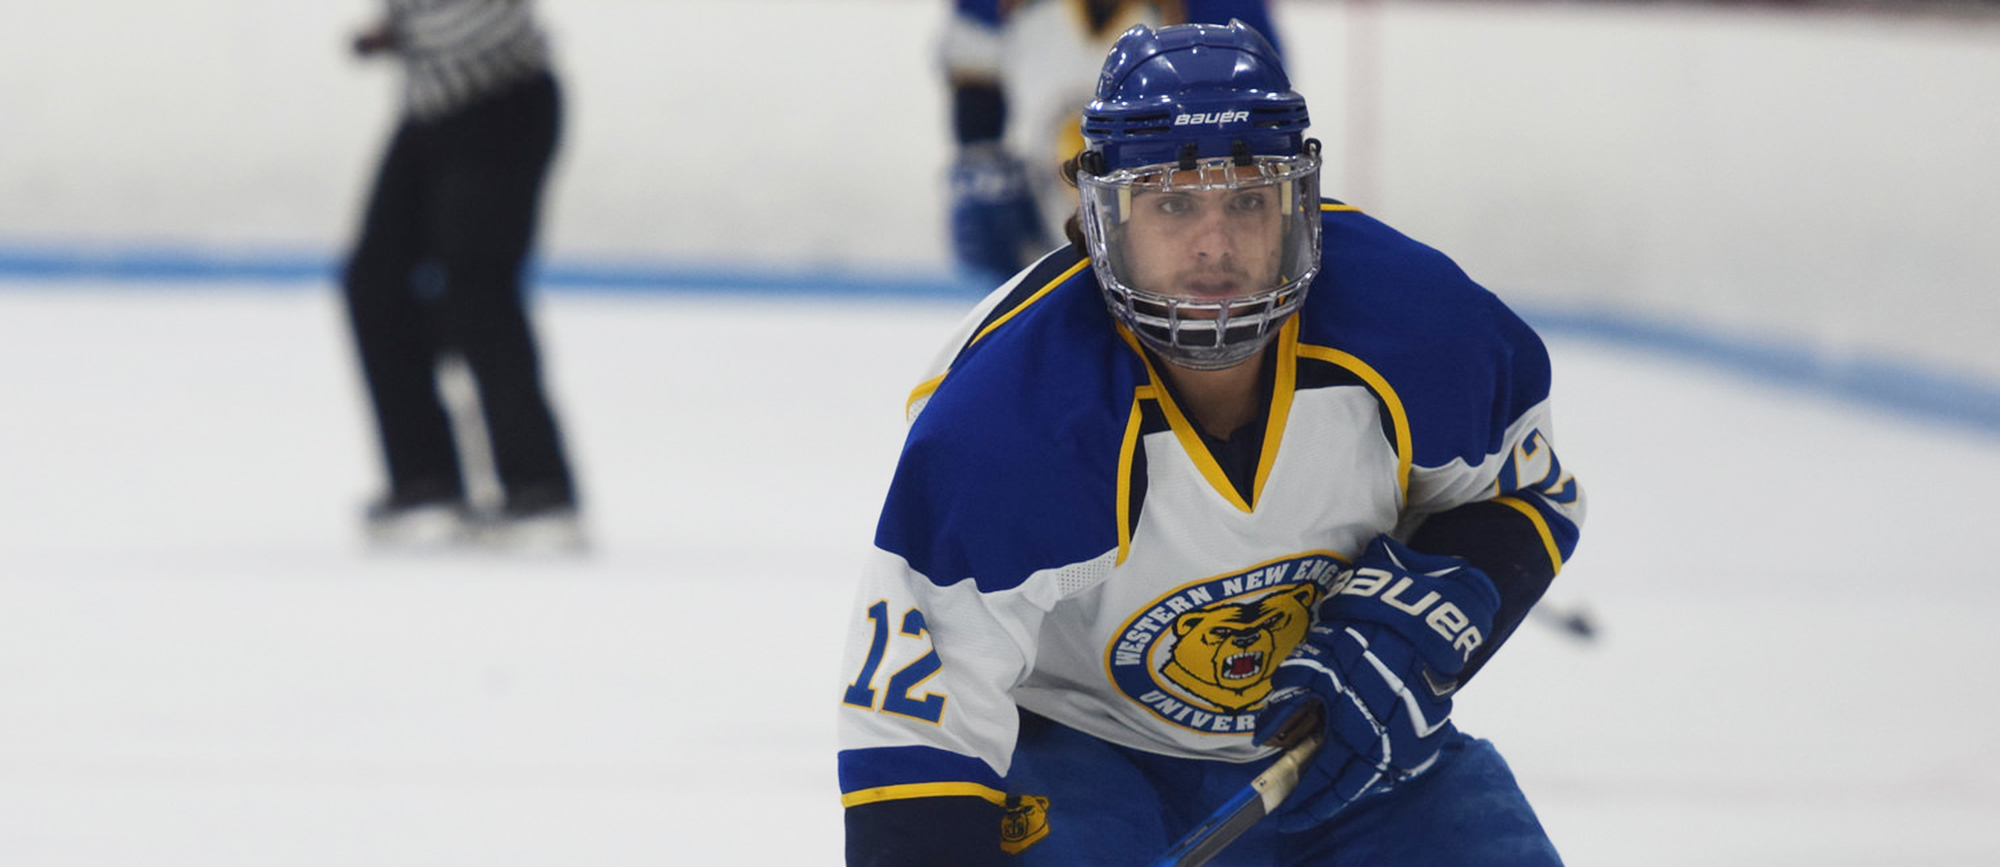 Sophomore Ryan Price was one of three goal scorers for Western New England in the Golden Bears' 6-3 loss to Nichols on Friday. (Photo by Rachael Margossian)